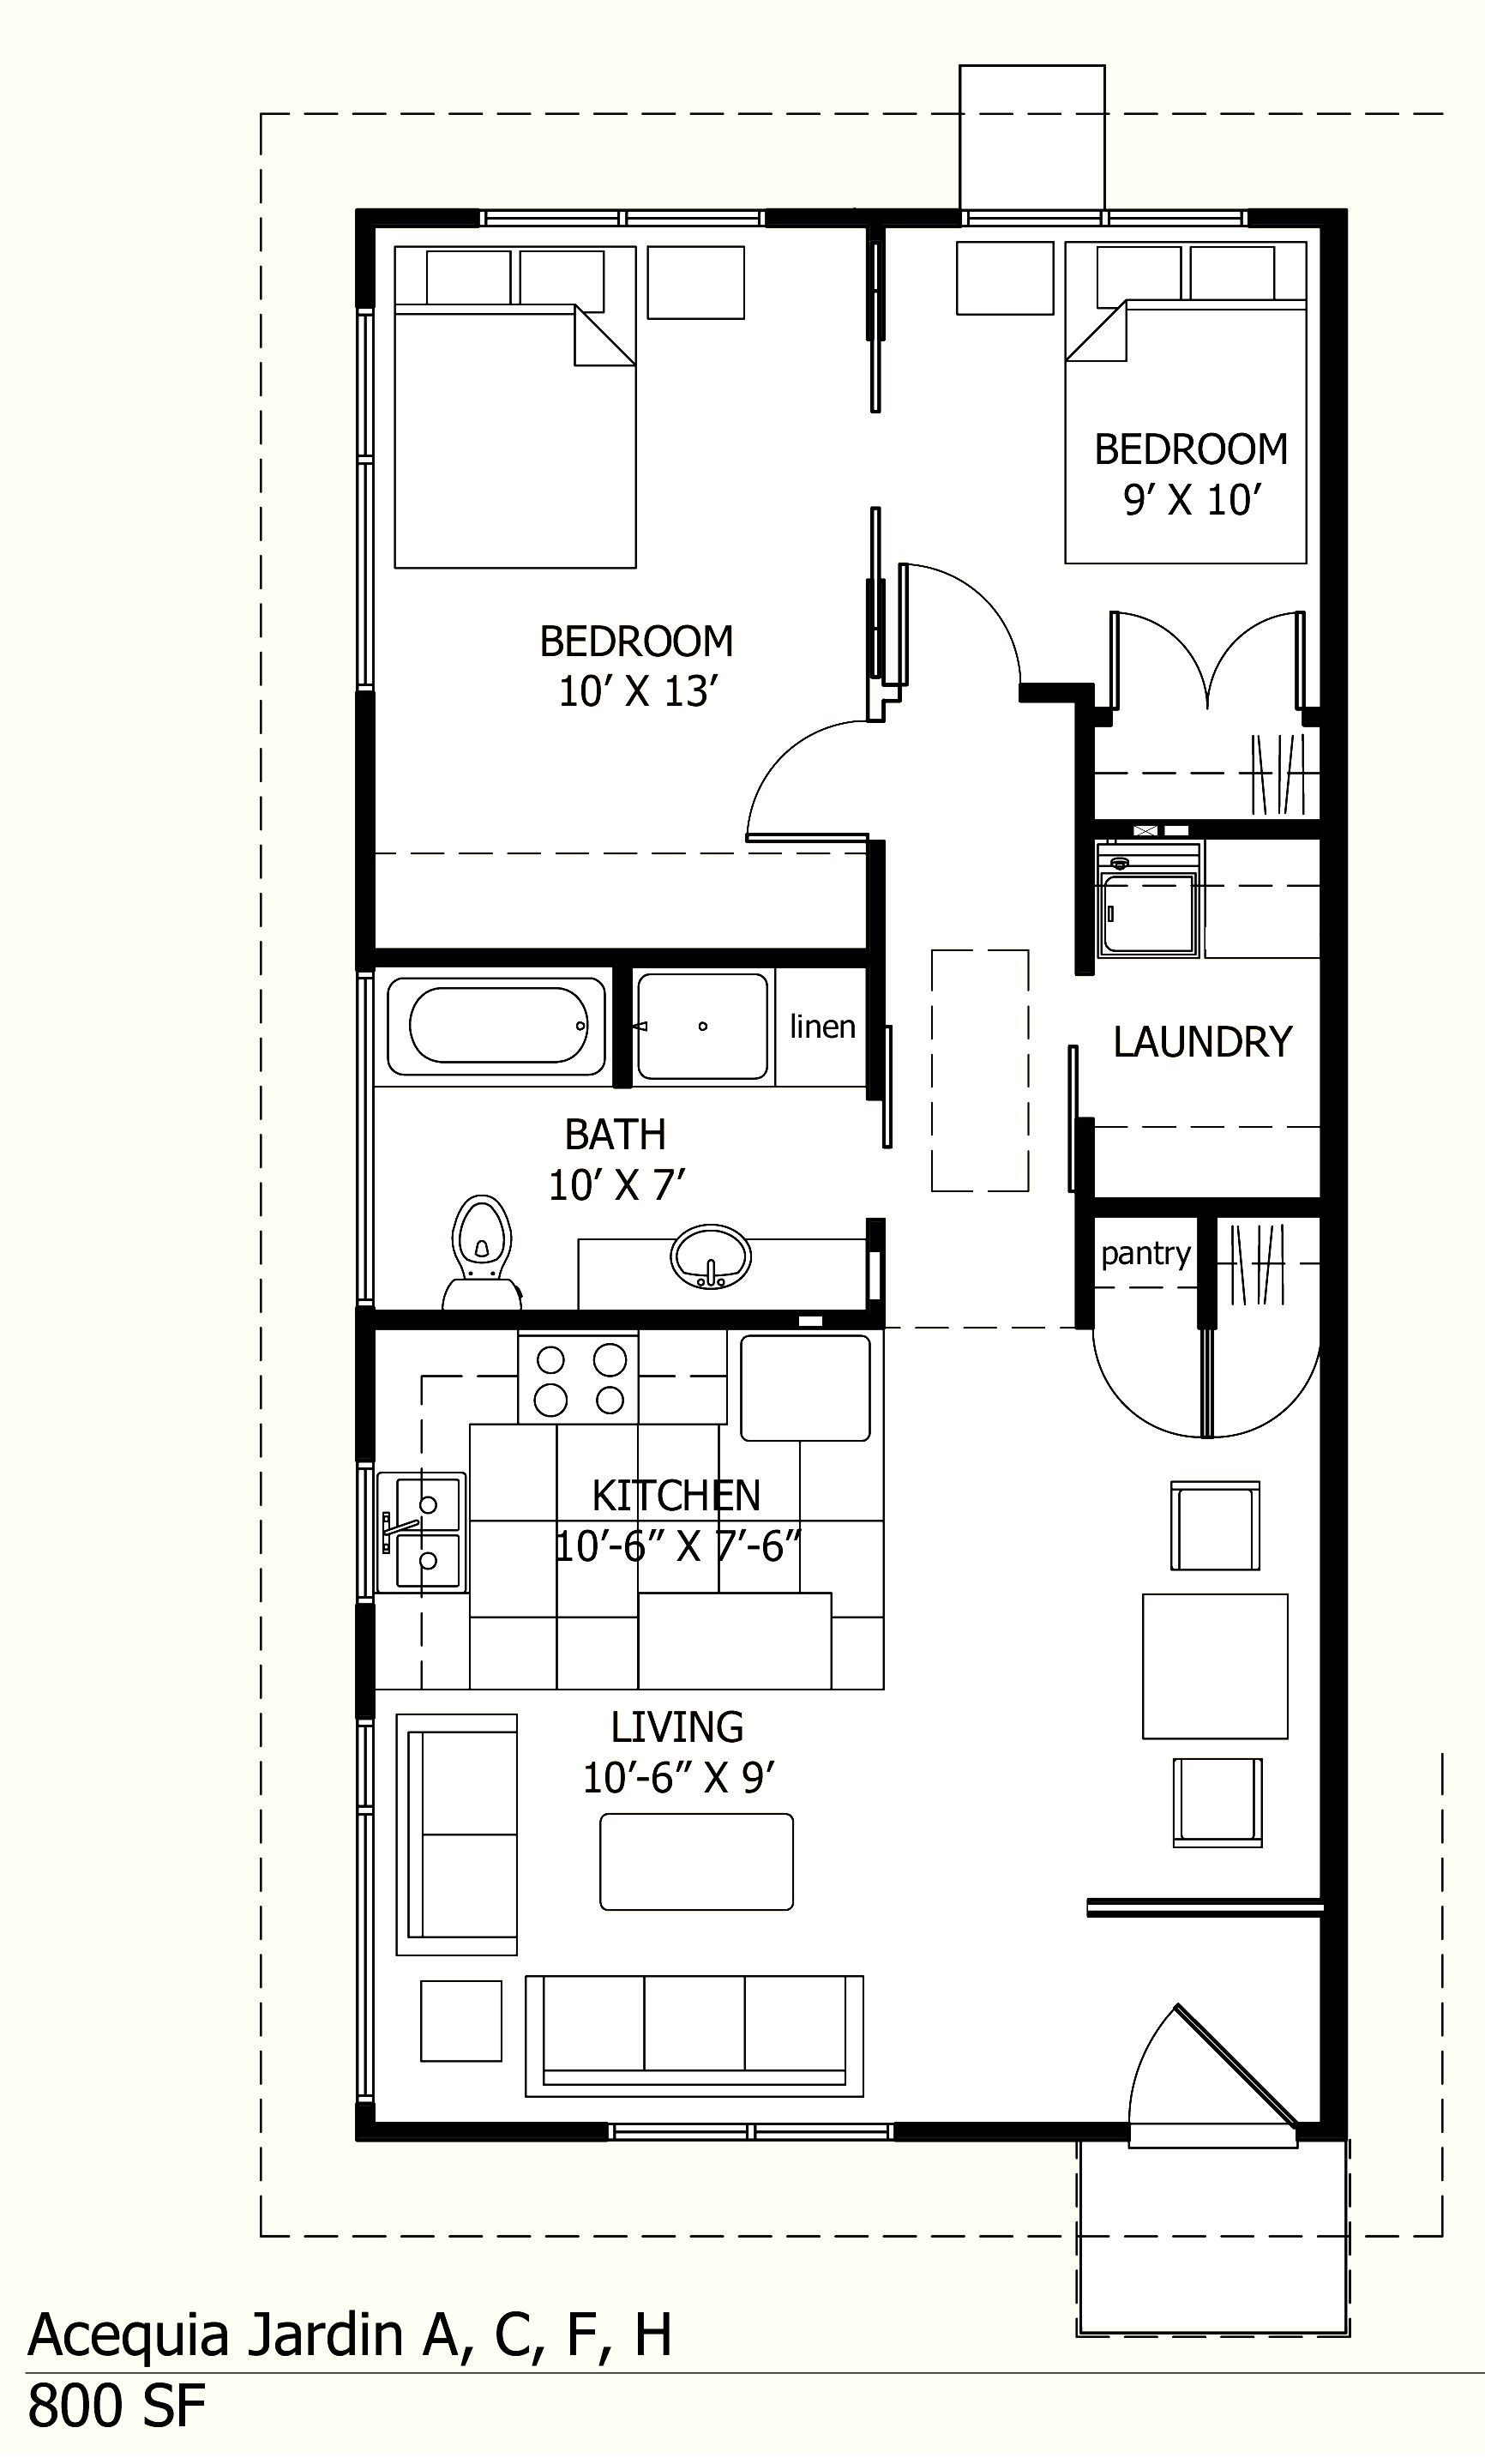 I like this one because there is a laundry room! :-) 800 sq ft floor Two Bedroom Home Plans Casitas Html on charleston narrow home plans, all american home plans, house with attached casita plans, casita floor plans with central courtyard, small casita floor plans, franklin home plans, guest house floor plans, wilderness home plans, coleman home plans, small casita house plans, casita plans arizona, pool home plans, backyard casita plans, casita trailer plans, colorado home plans, inner courtyard home plans, adobe casita plans, chateau home plans, mexican casita house plans, timberland home plans,